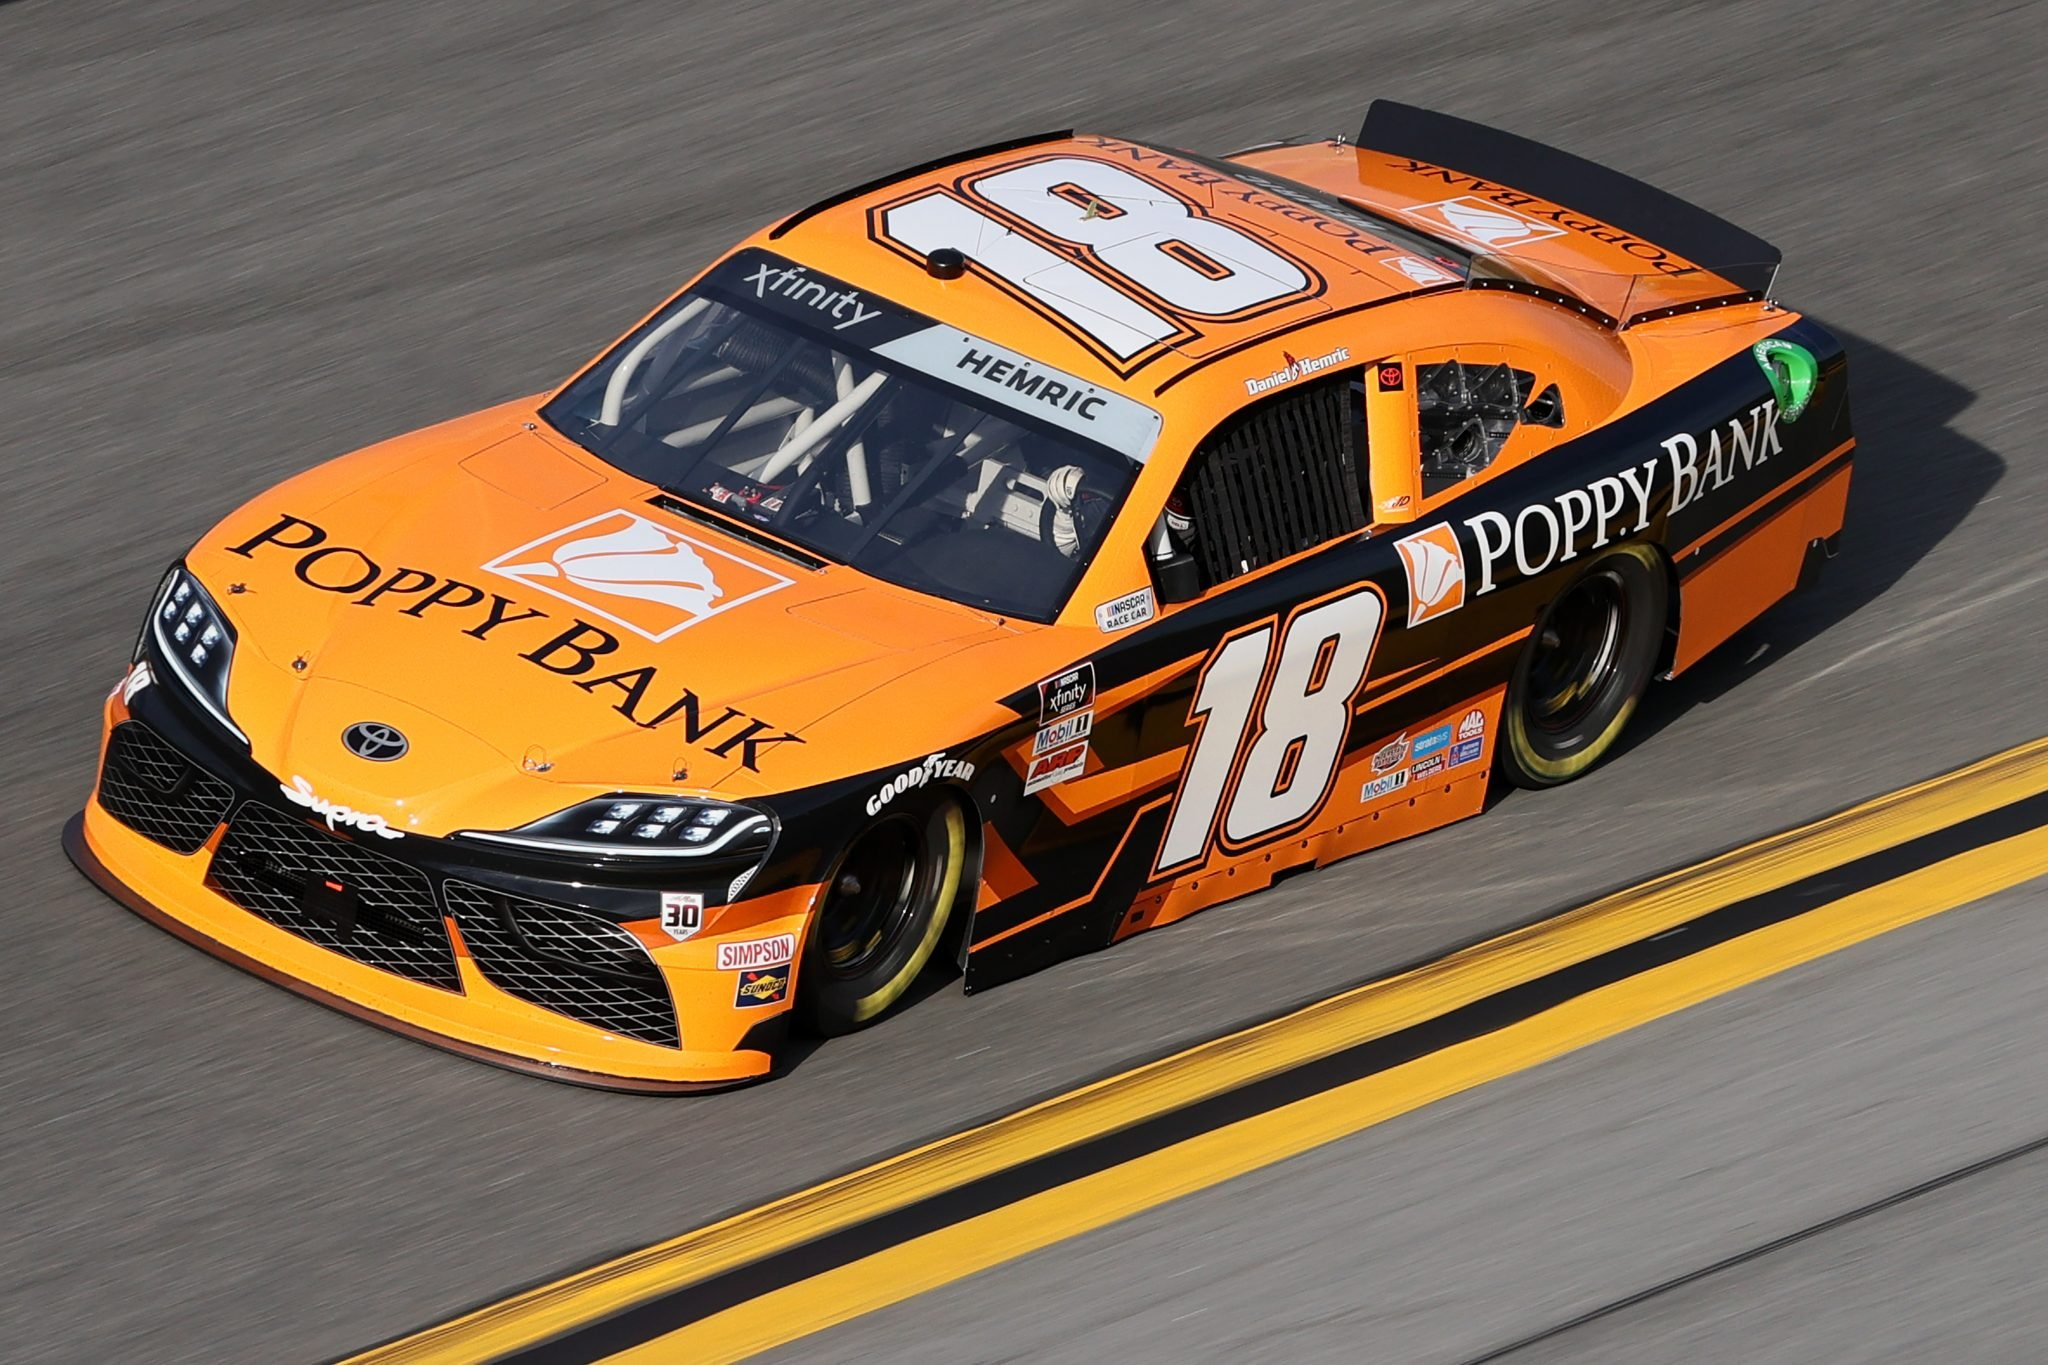 DAYTONA BEACH, FLORIDA - FEBRUARY 12: Daniel Hemric, driver of the #18 Poppy Bank Toyota, practices for the NASCAR Xfinity Series Beef. It's What's For Dinner. 300 at Daytona International Speedway on February 12, 2021 in Daytona Beach, Florida. (Photo by James Gilbert/Getty Images) | Getty Images